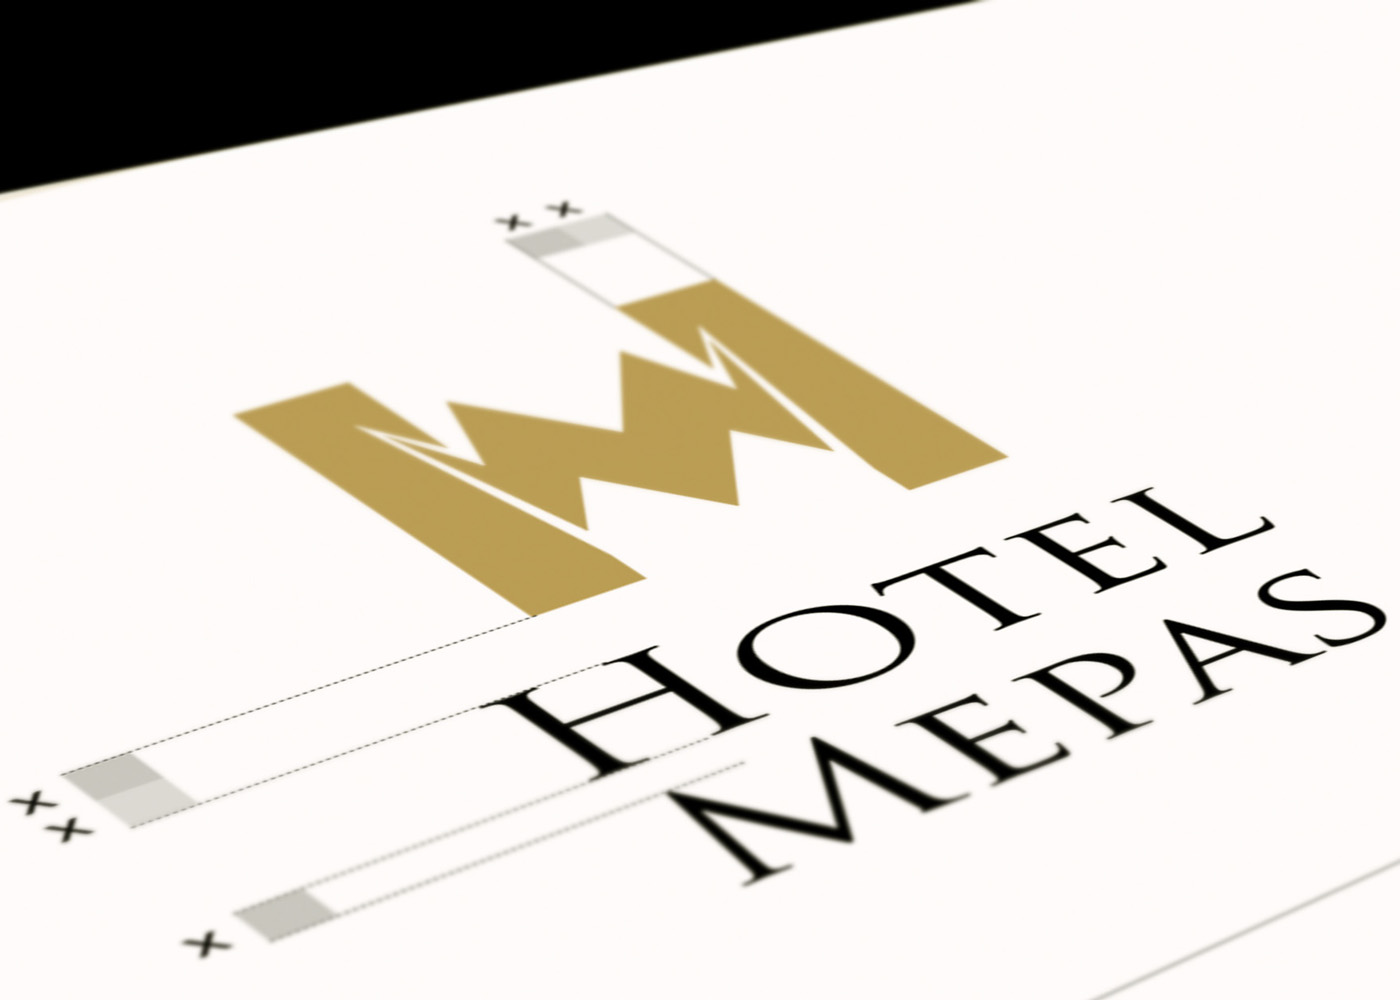 Graphic Standard Manual and Web Design for Hotel Mepas